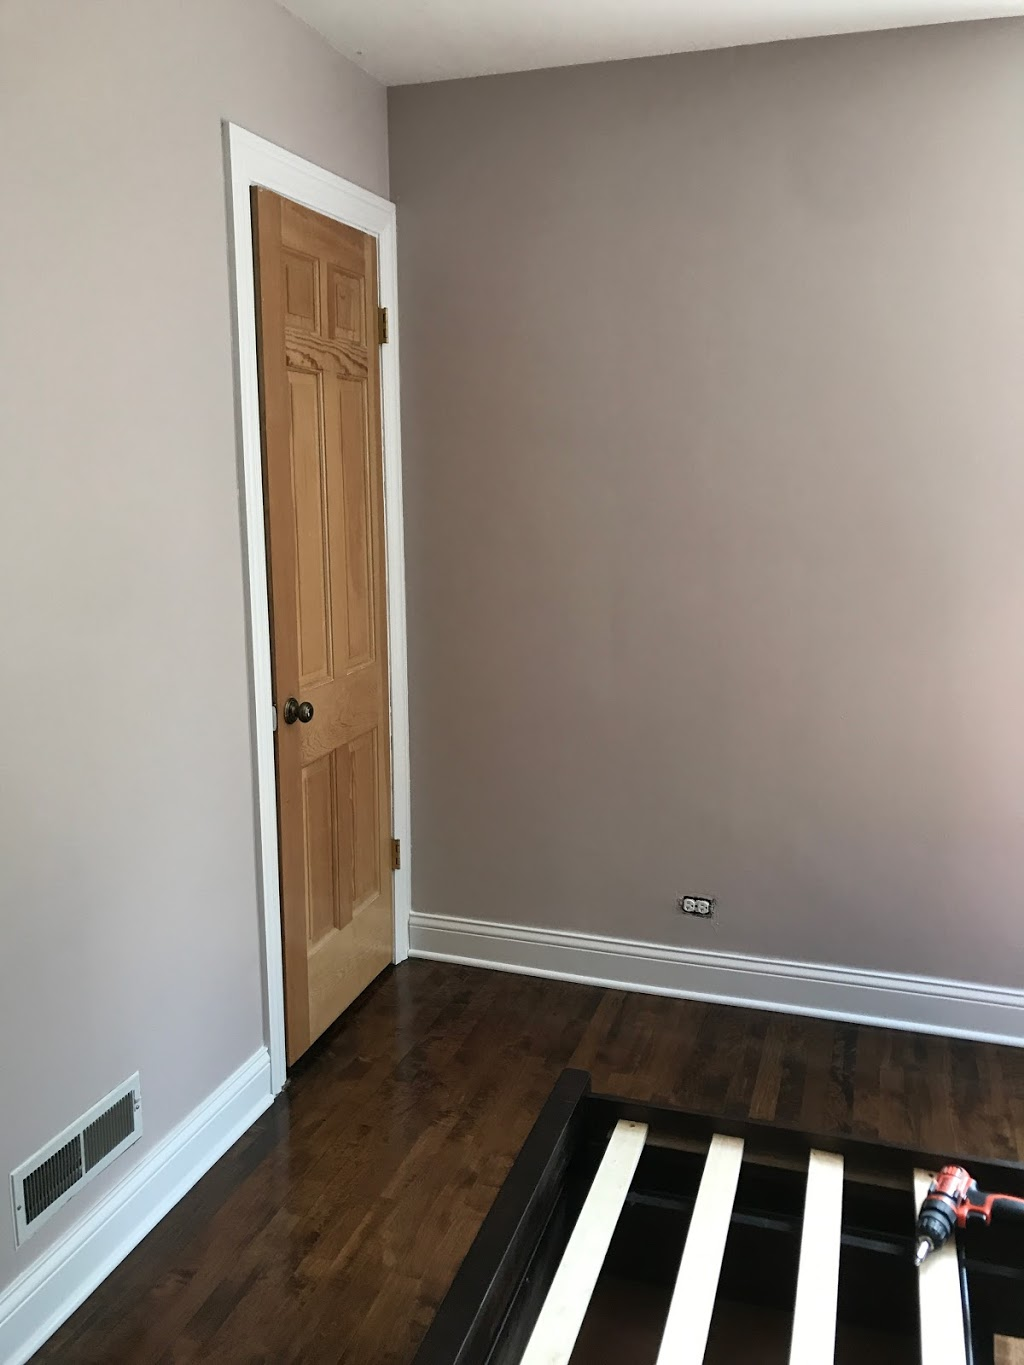 A+ hardwood Flooring & home Remodeling - painter  | Photo 10 of 10 | Address: 3332 N Whipple St, Chicago, IL 60618, USA | Phone: (773) 780-5631